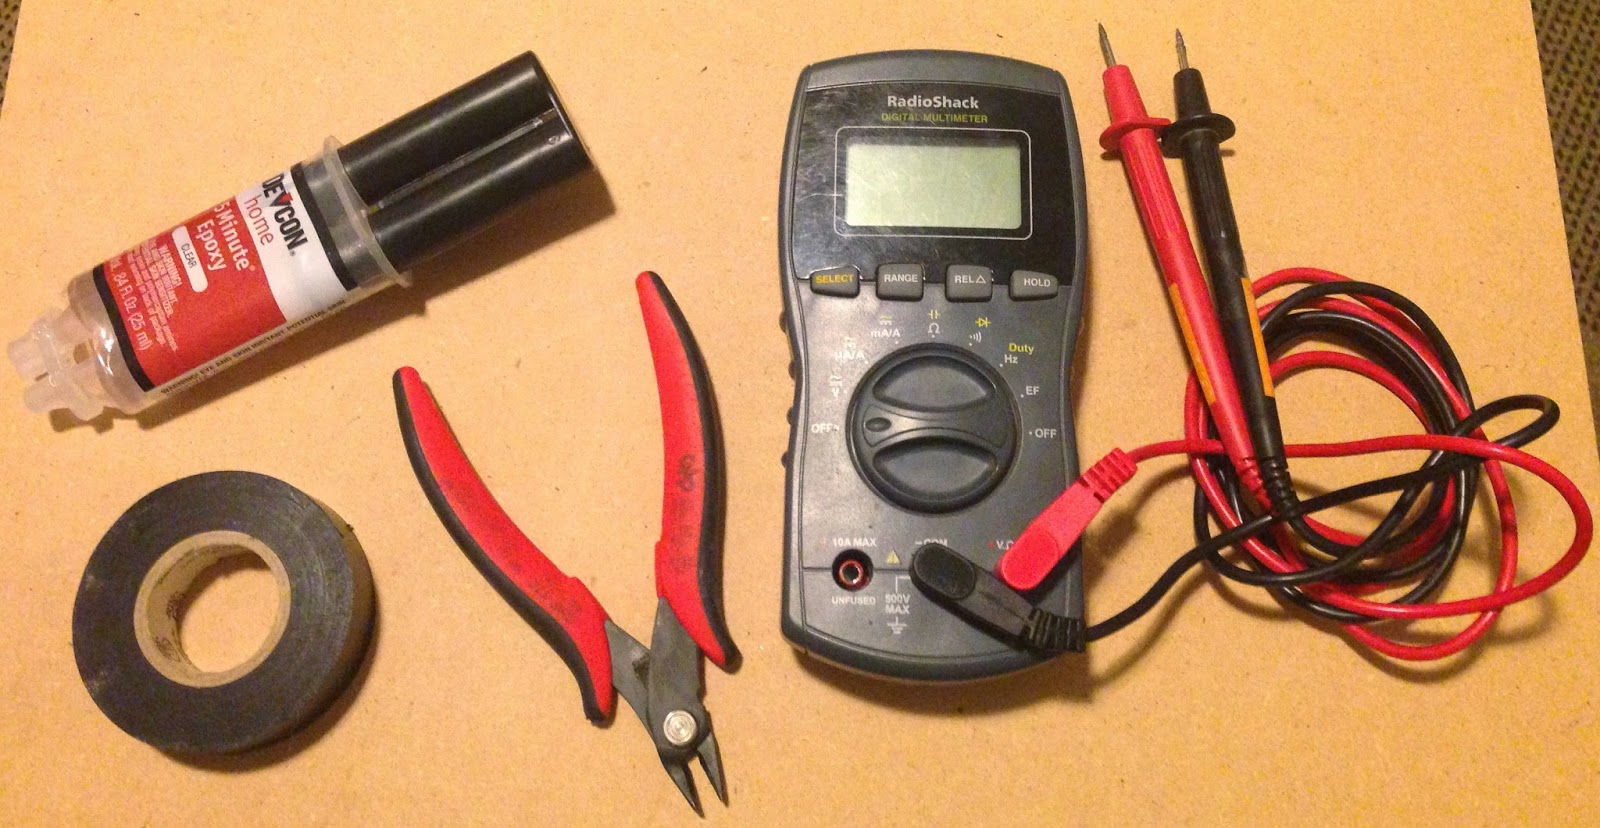 Maker Quest Portable Solar Usb Charger Diy Phone Battery Circuit Homemade Wind Wire Strippers